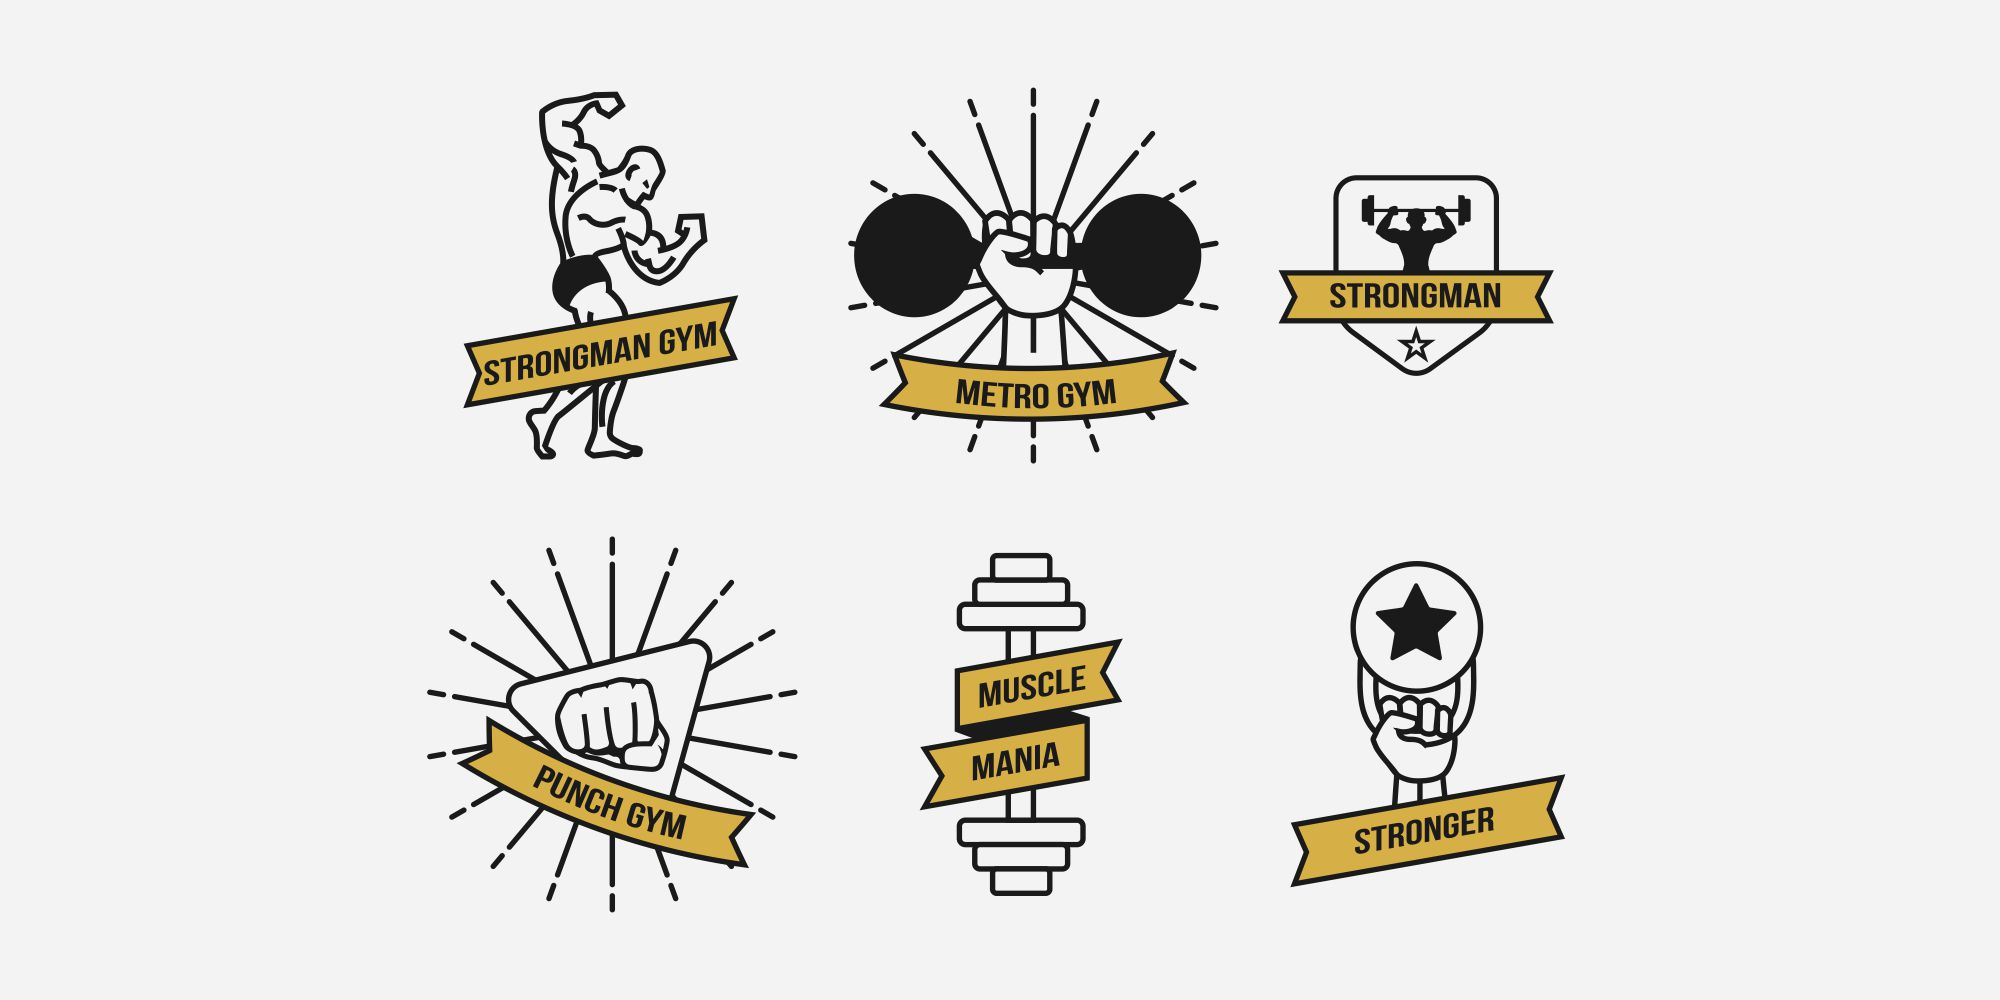 Shown Gym And Fitness Logos